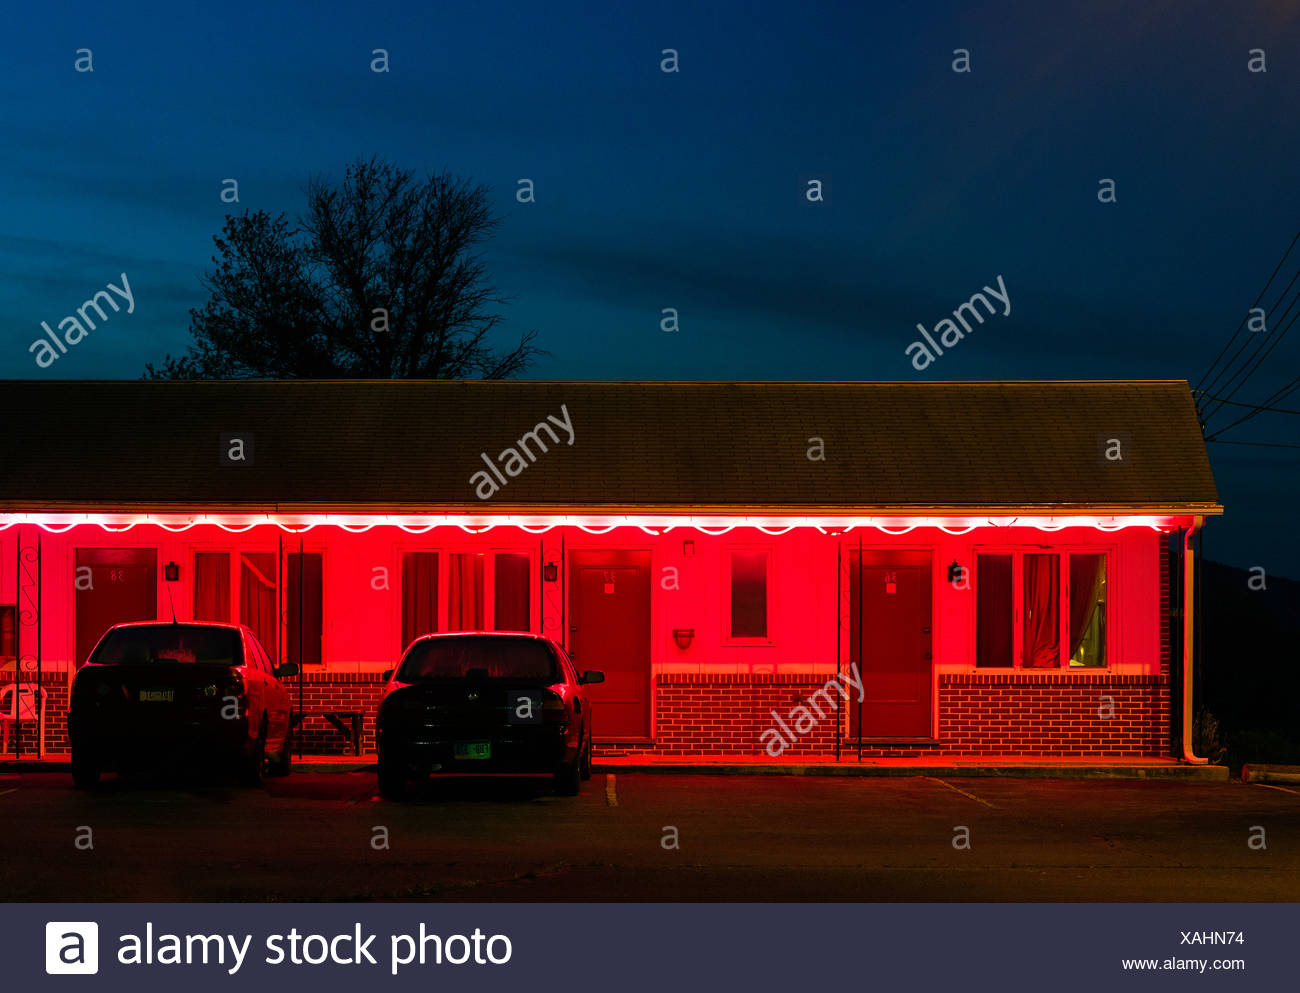 Budget motel exterior at dusk. - Stock Image